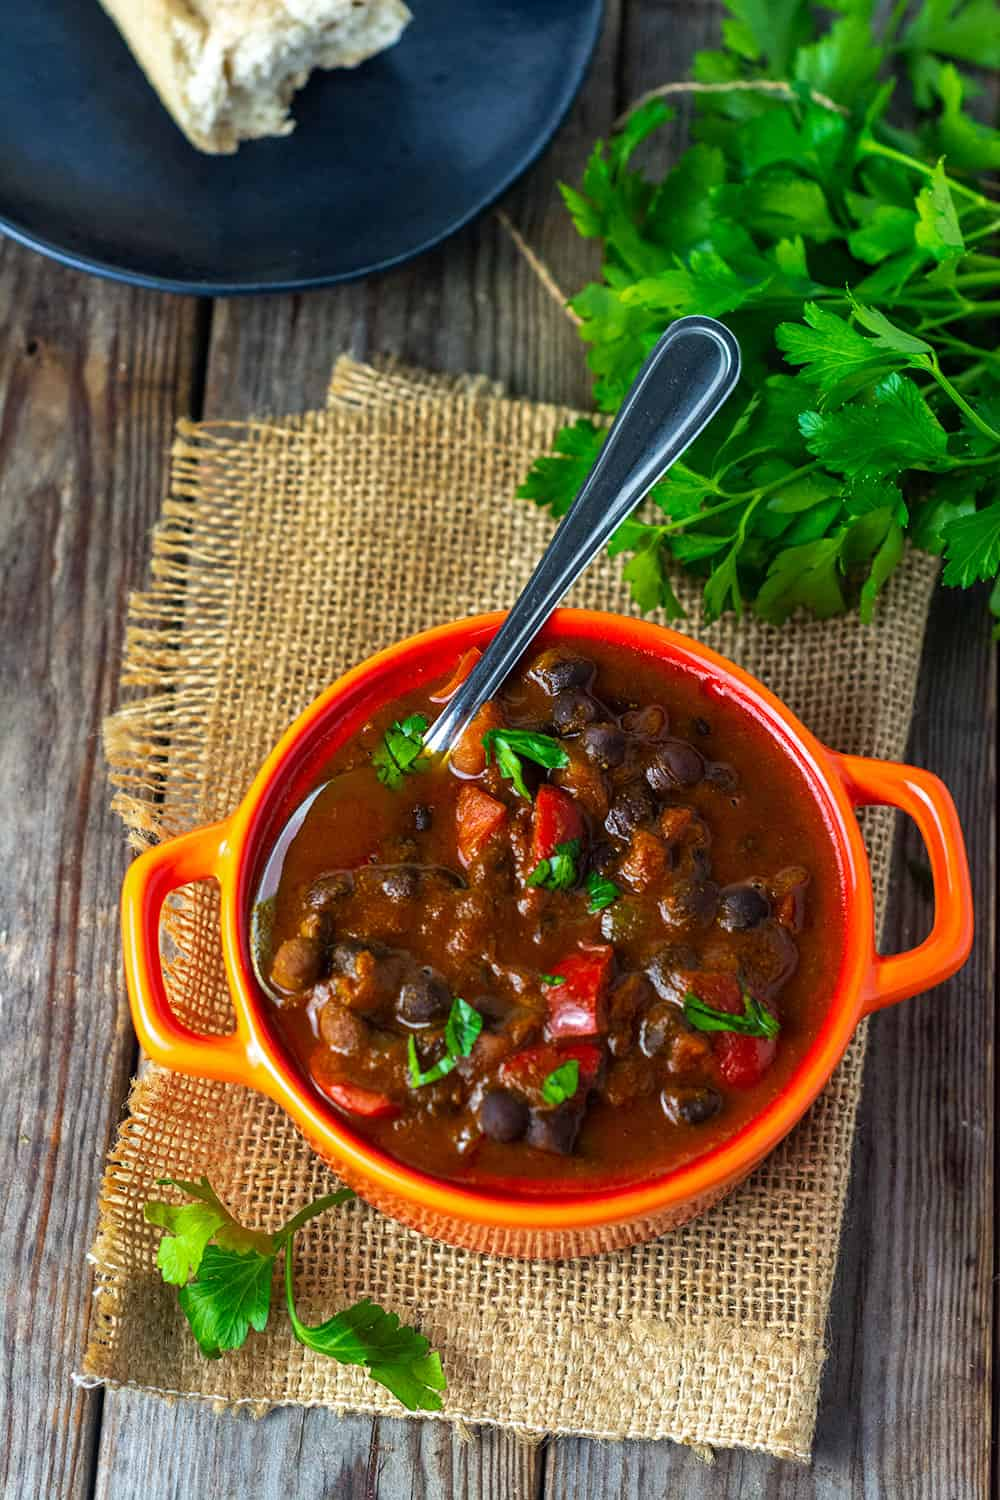 Overhead Black Chickpeas Stew with tomatoes, bell pepper, onion in a vegetable broth, served in a red dish on a wooden background garnished with parsley